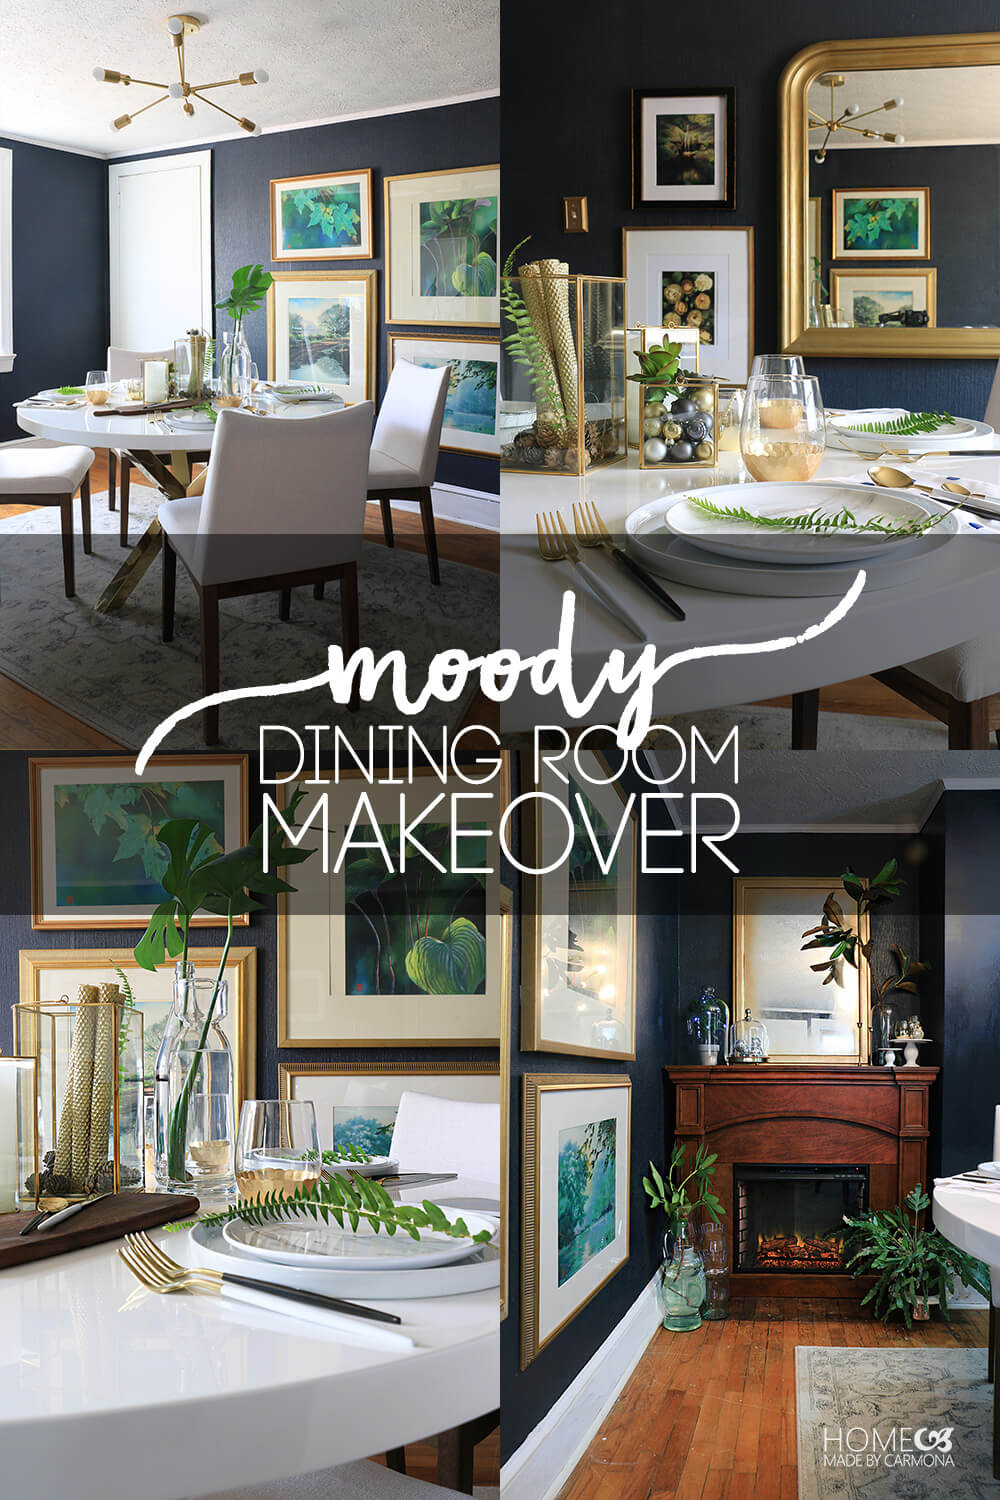 Moody-Dining-Room-Makeover